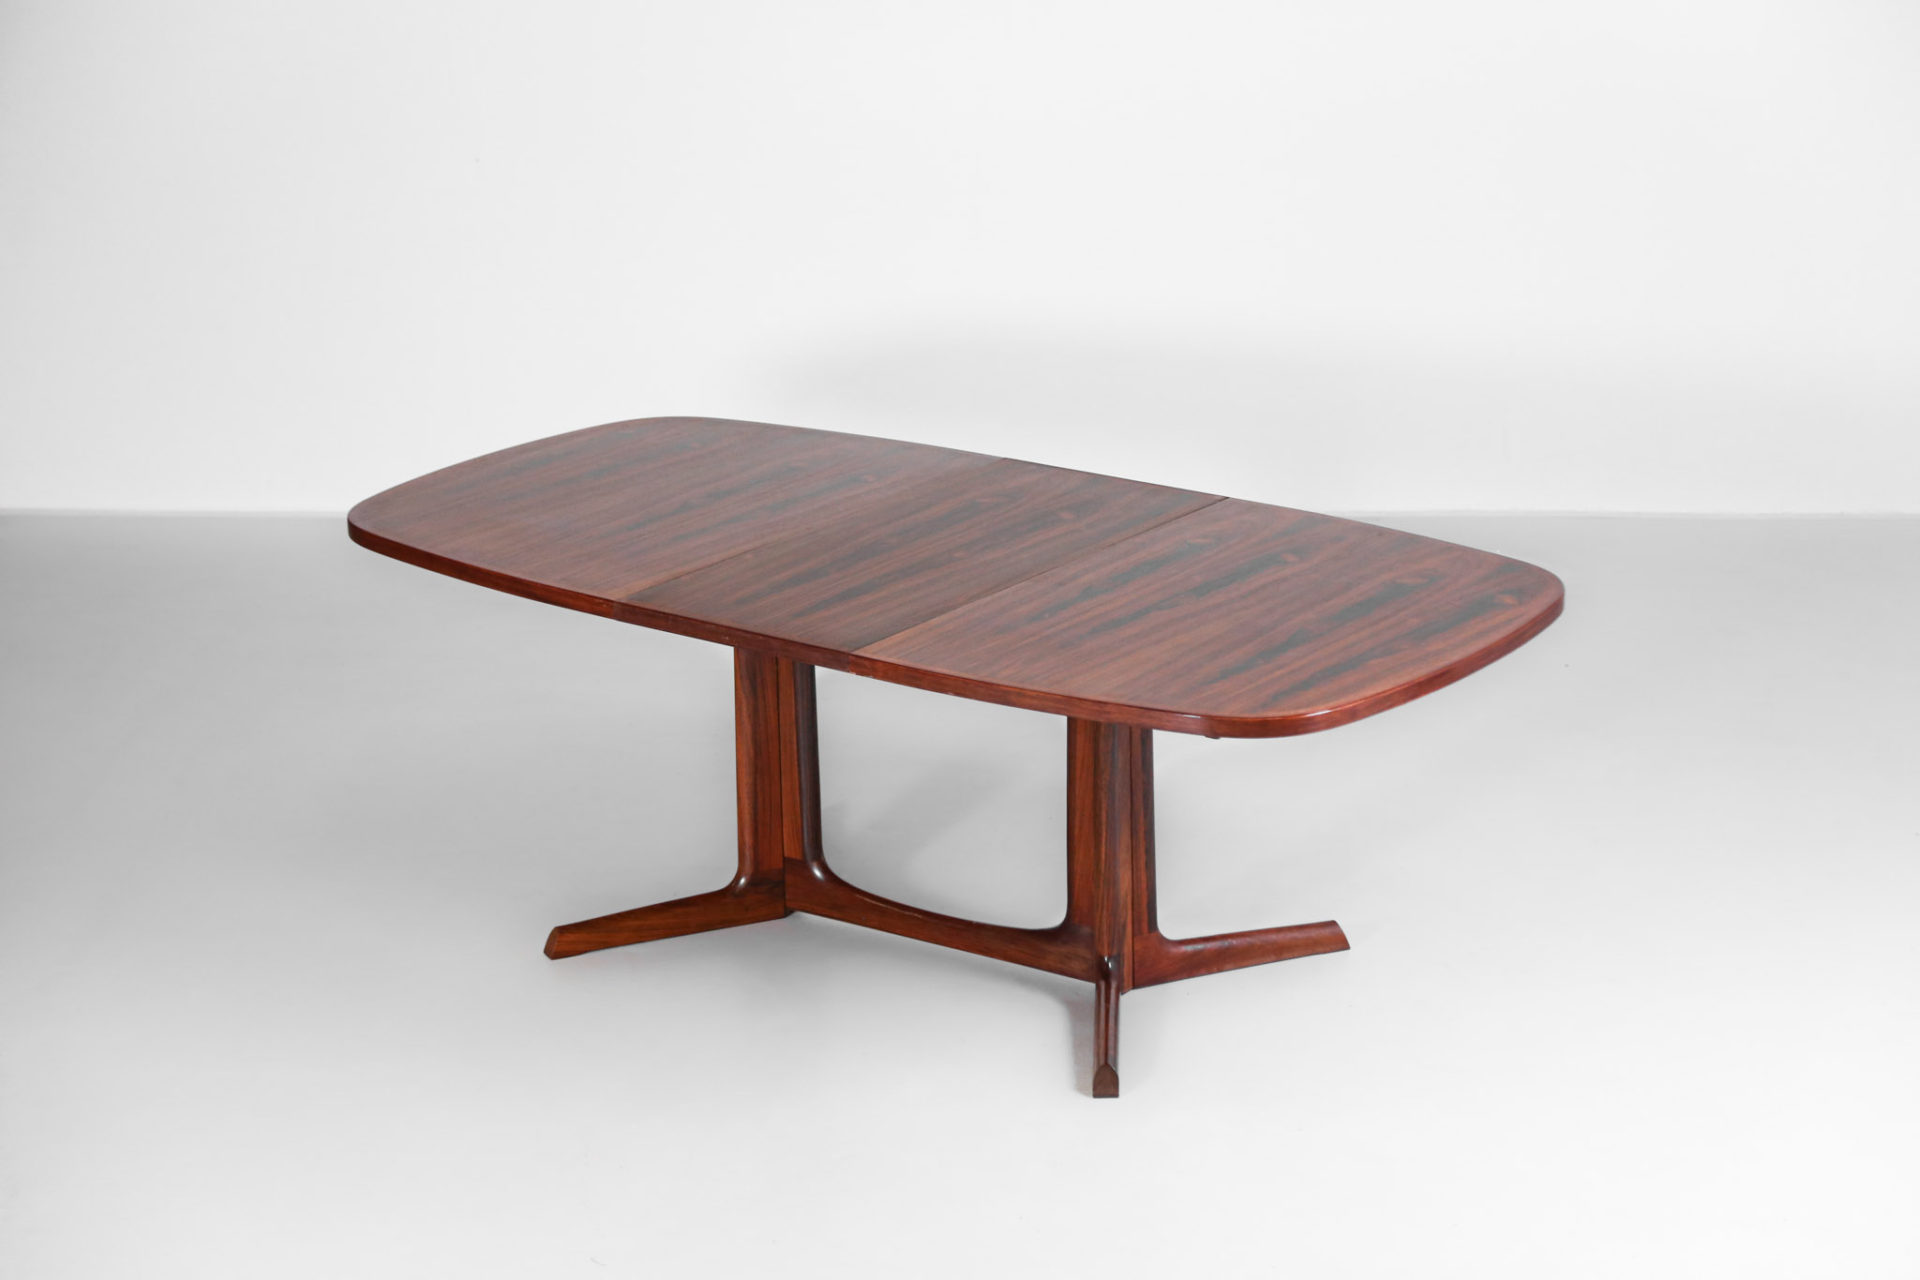 table chaise niels koefoed danoise scandinave teck 24